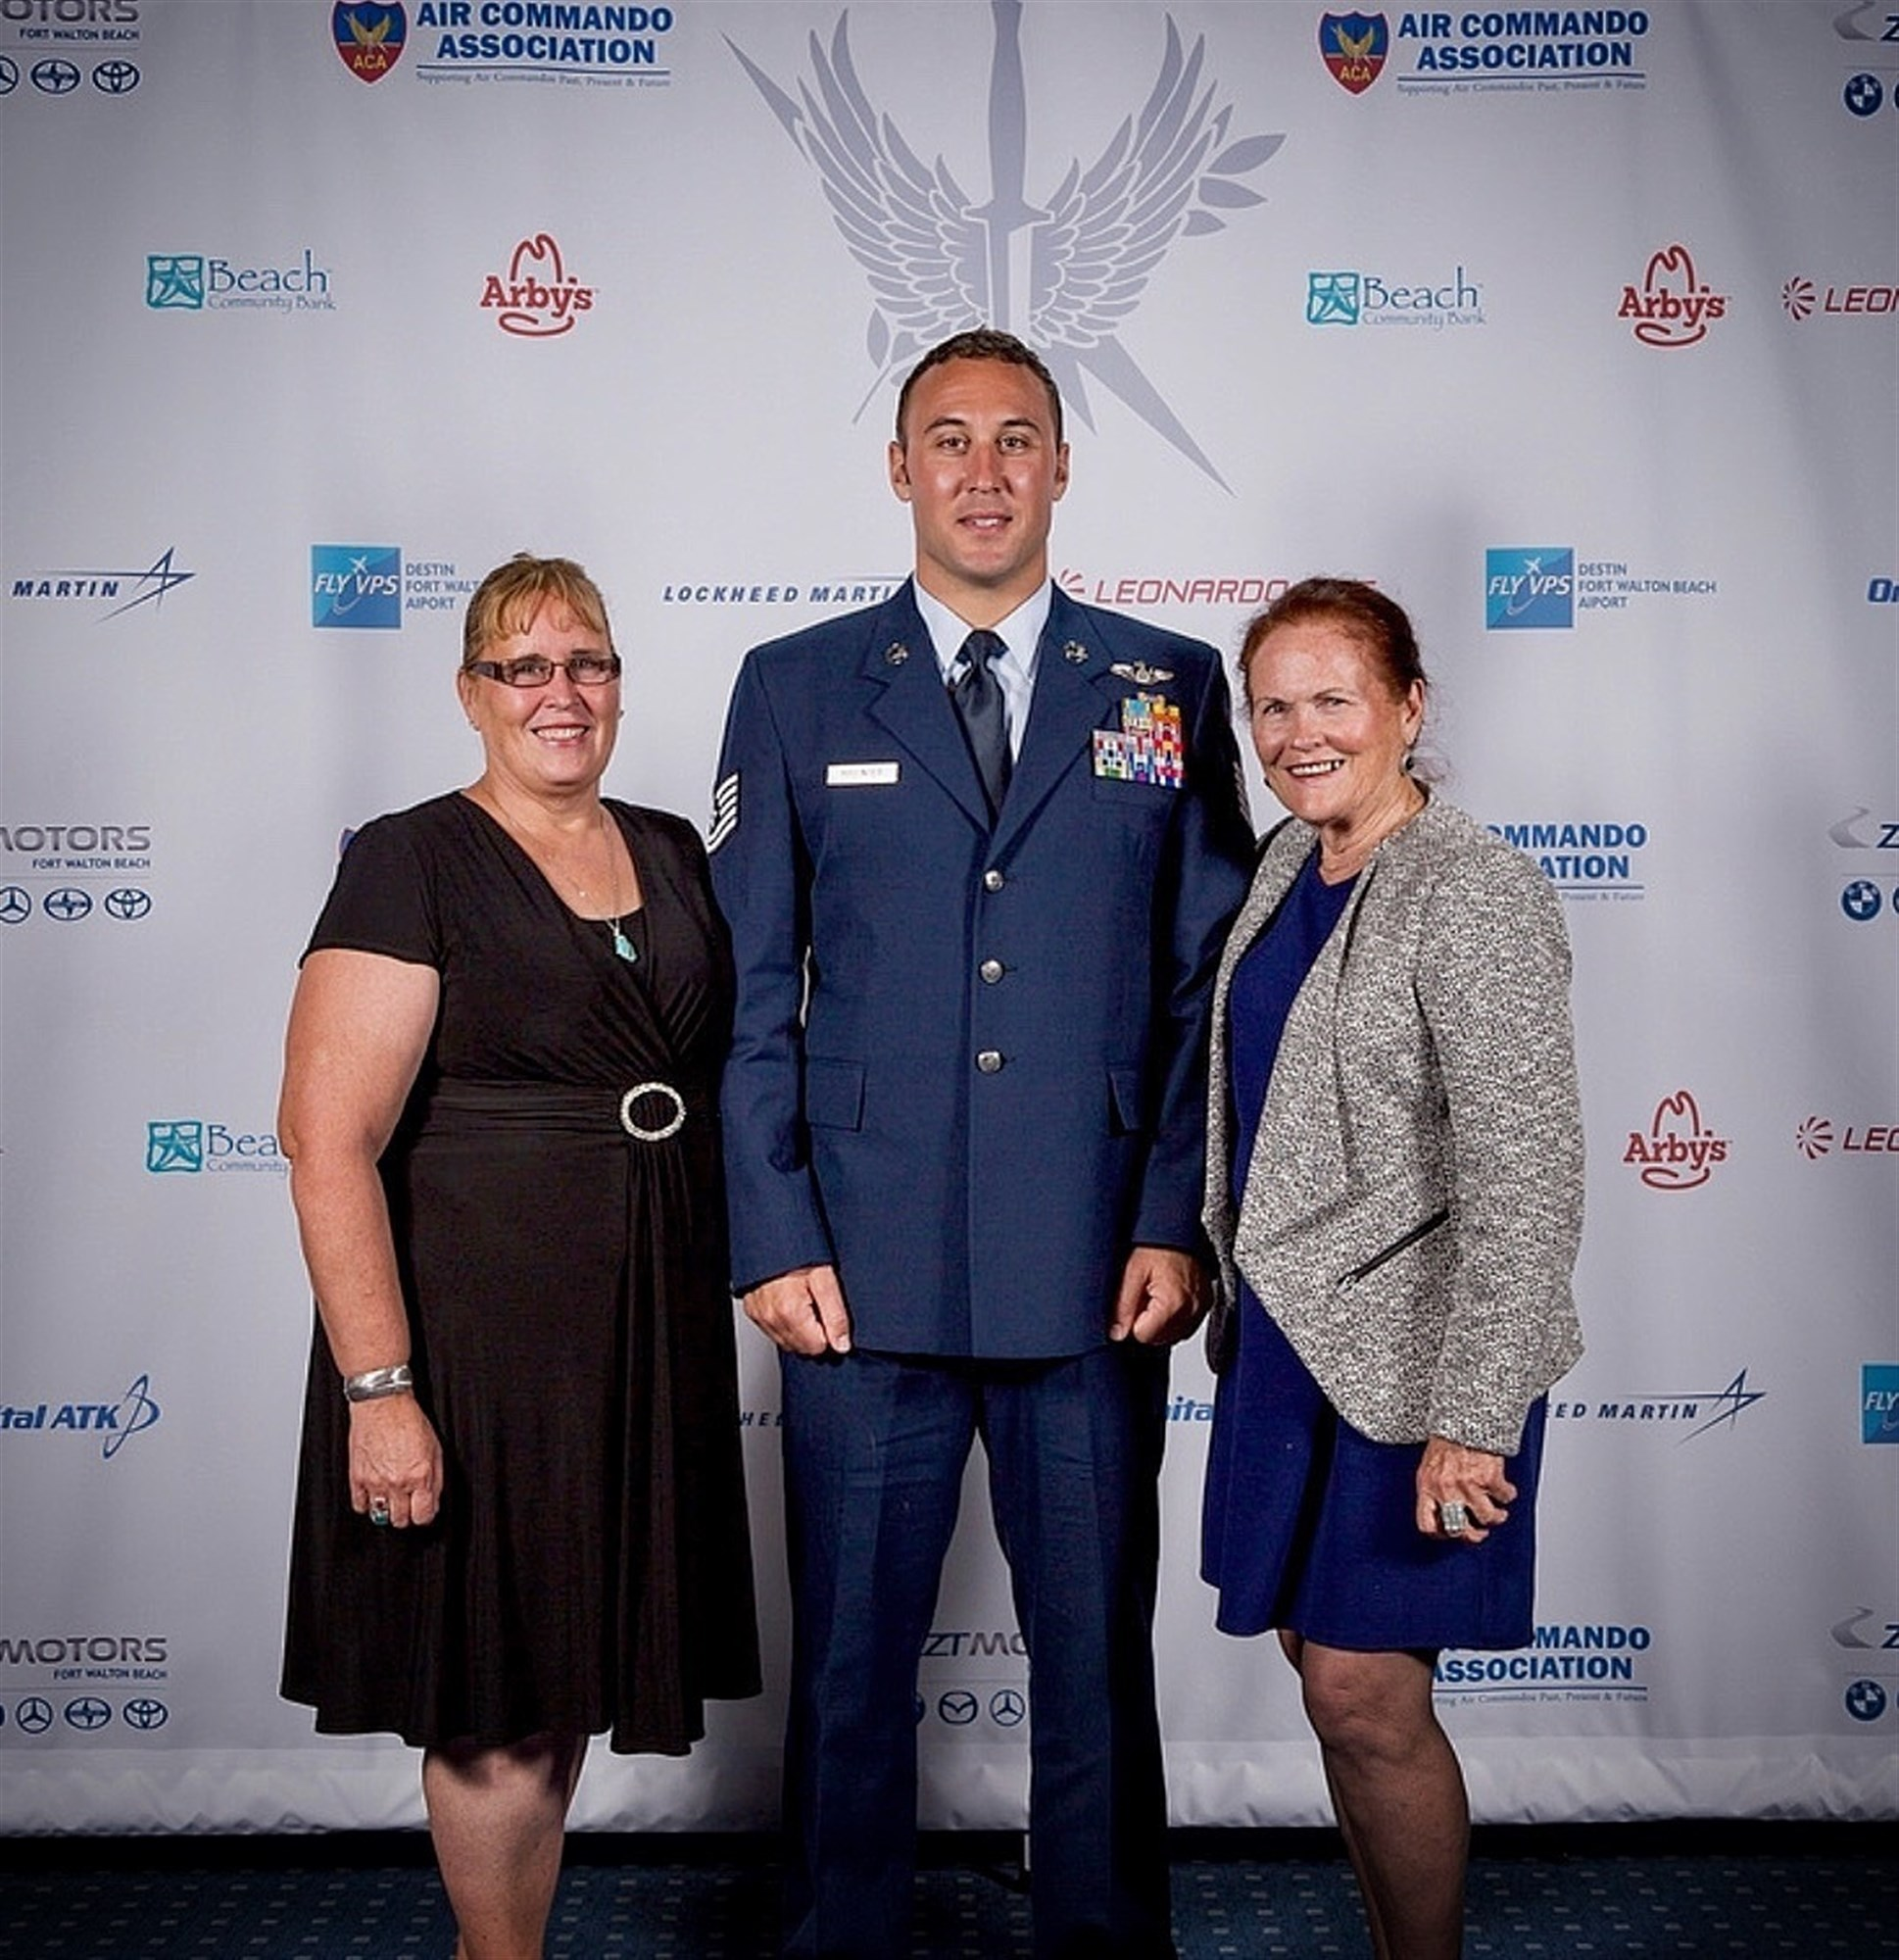 U.S. Air Force Tech. Sgt. Kade Bollinger poses for a photo with his mother and grandmother following his award recognition Oct. 13, 2017, at the Air Commando Association award banquet at Hurlburt Field, Florida. The major command level award is presented to the Airman who provided the greatest contribution to AFSOC in that year. (Courtesy photo)